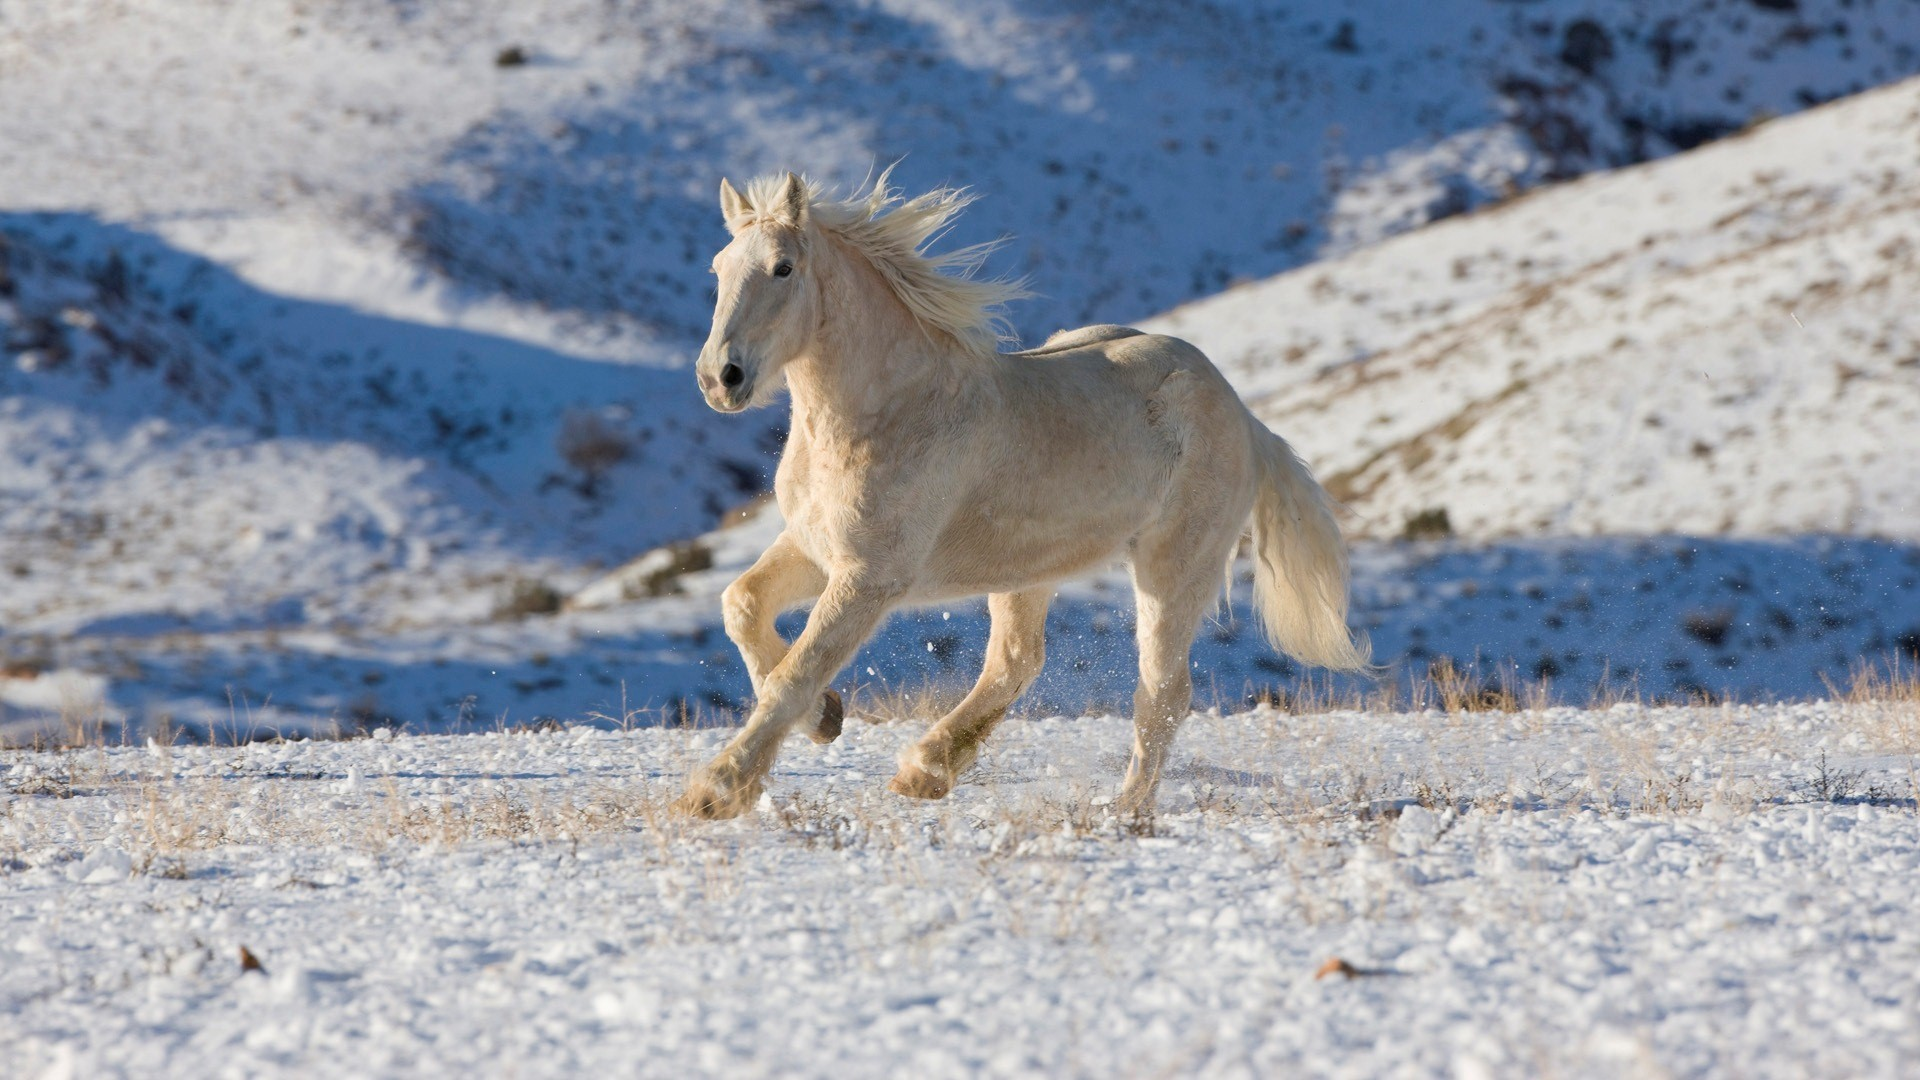 white horse in snow wallpaper 62476